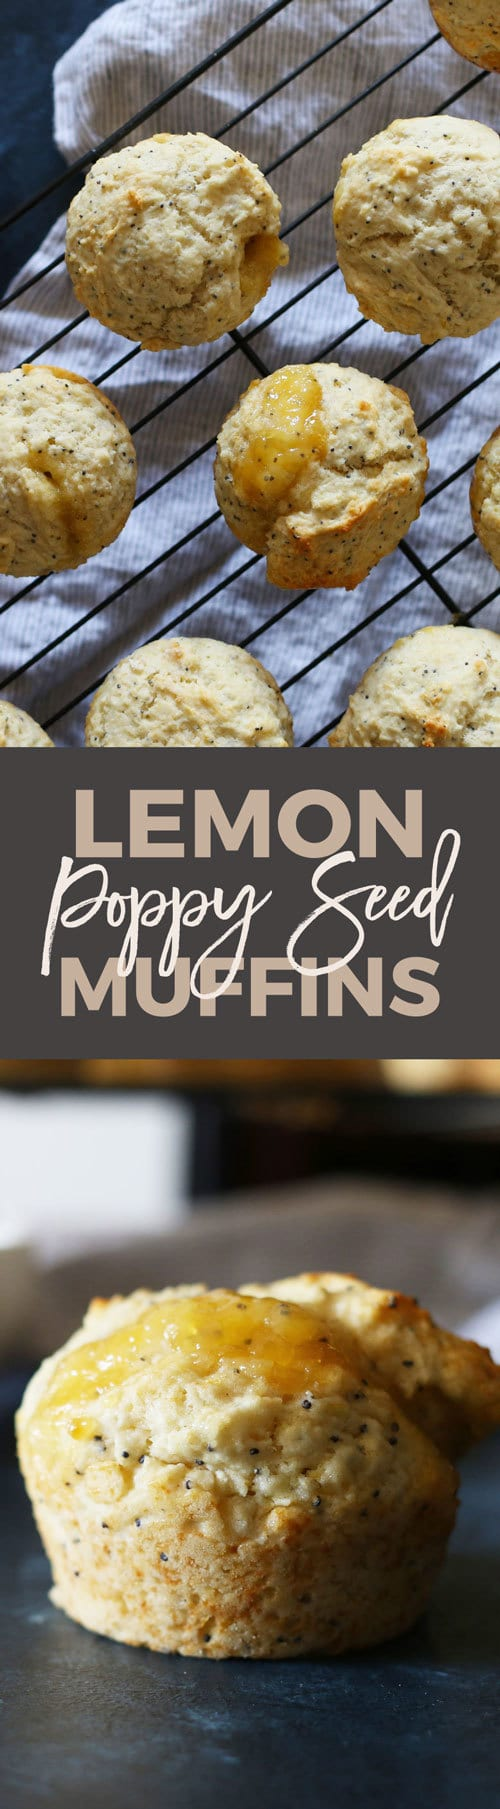 Lemon poppy seed muffins with a twist! These easy muffins are filled with lemon curd and are perfect for every day breakfasts or a fancy brunch menu.